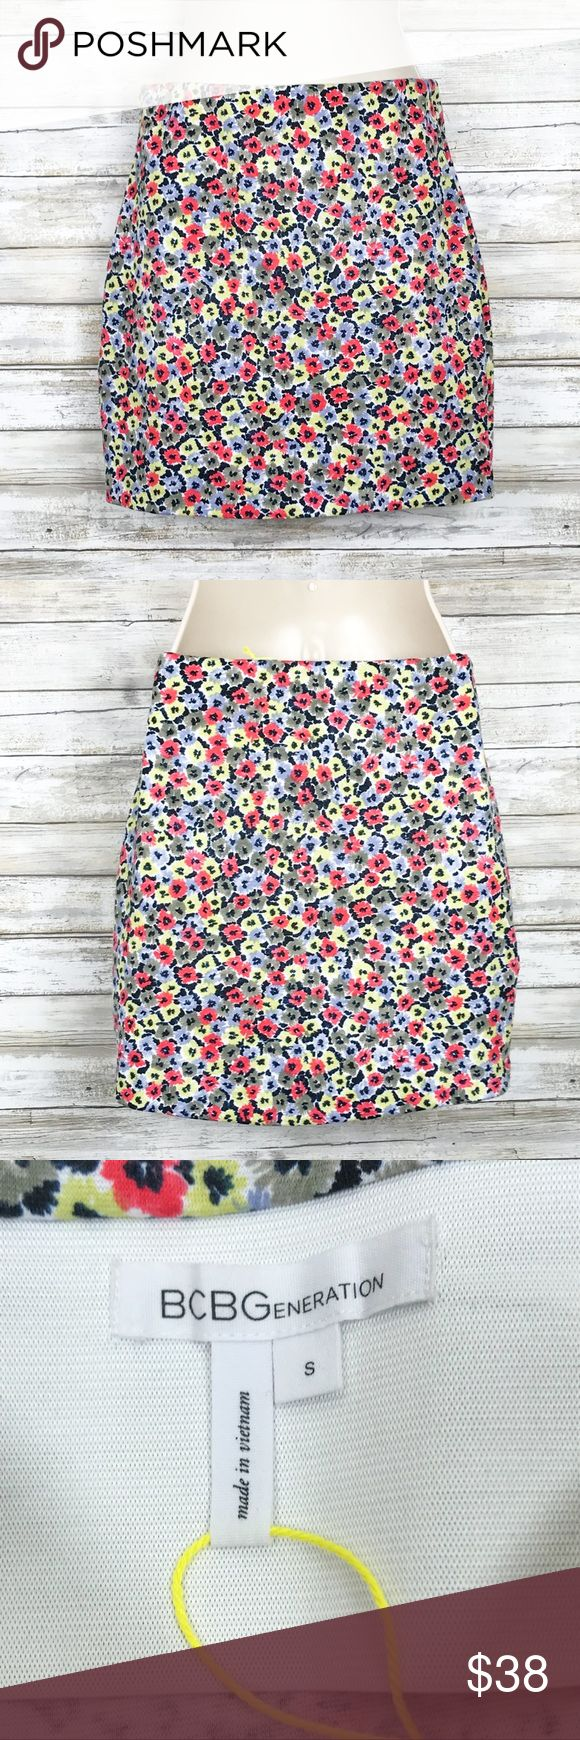 NWOT BCBGeneration floral mini skirt sz S BCBGeneration floral banded mini skirt  sz S  Polyester/ spandex NEW WITHOUT TAGS BCBGeneration Skirts Mini